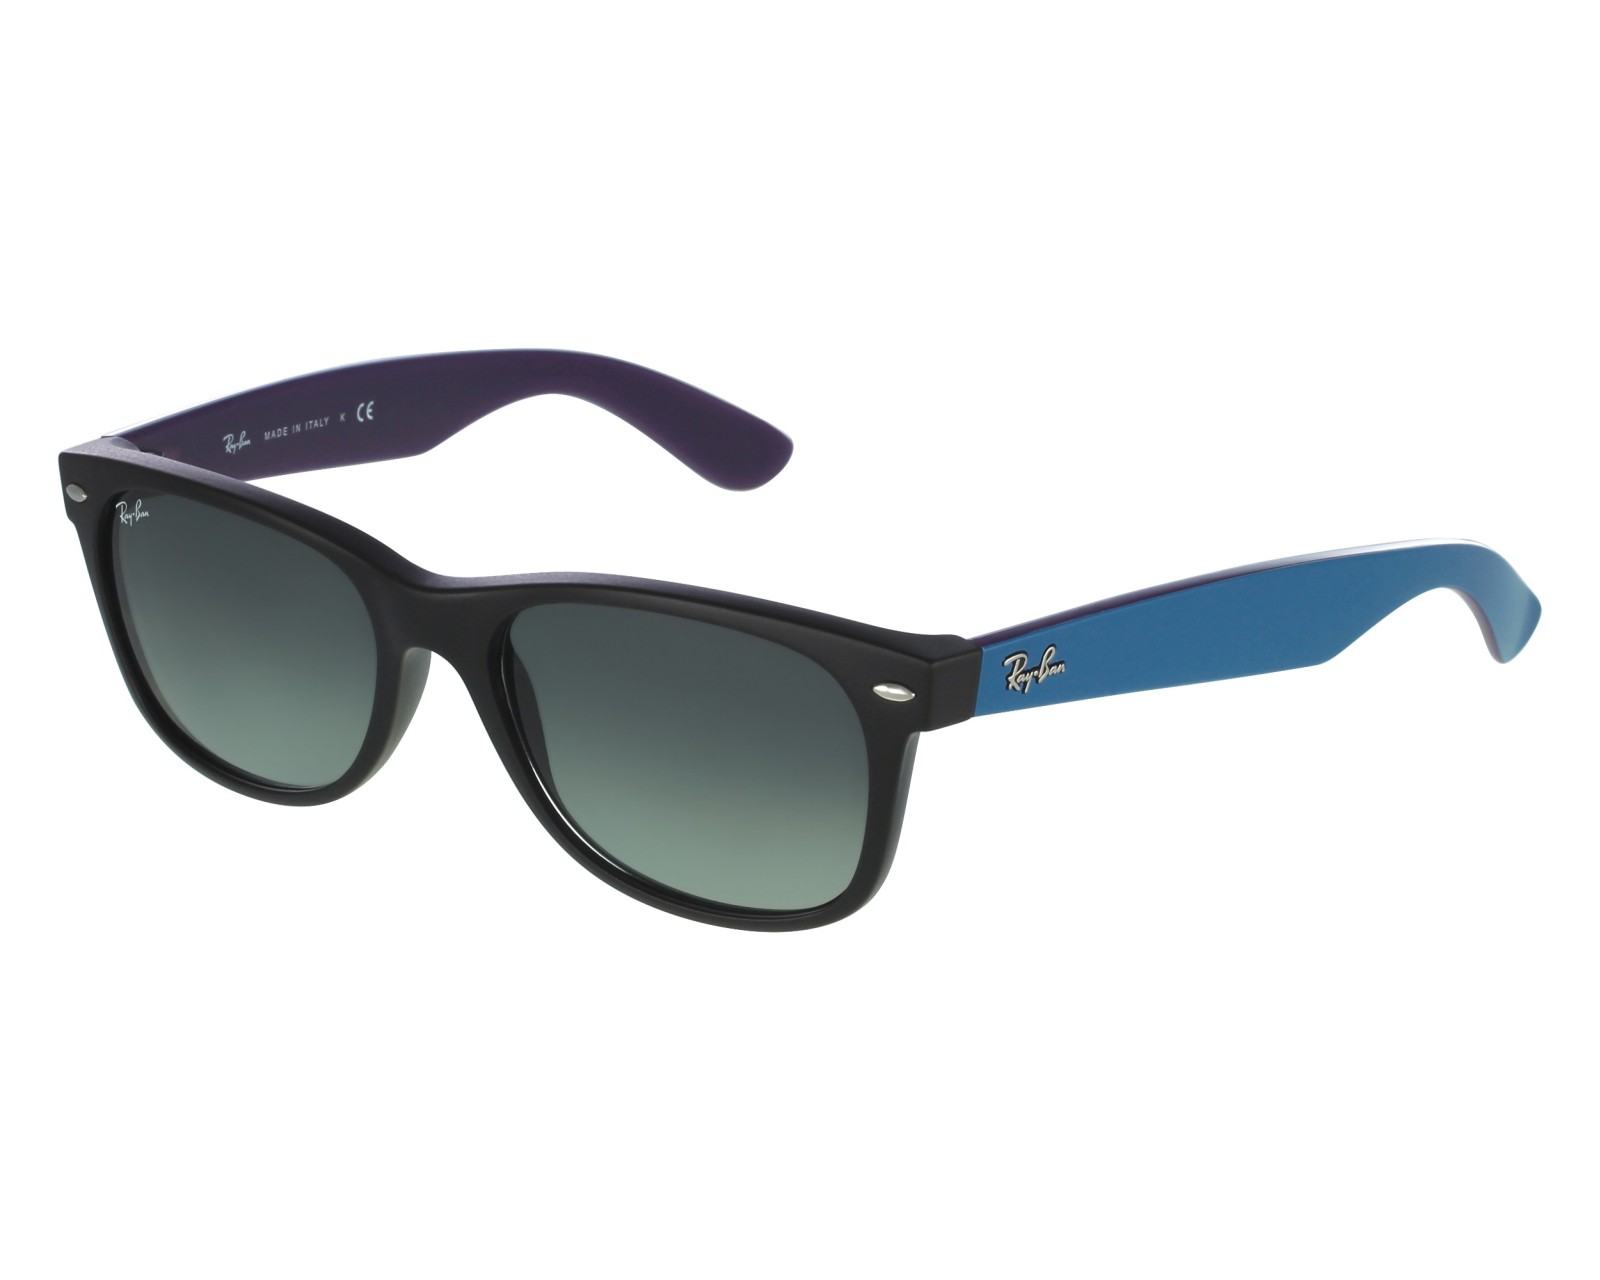 16470124cfede Sunglasses Ray-Ban RB-2132 6183 71 52-18 Black Blue front